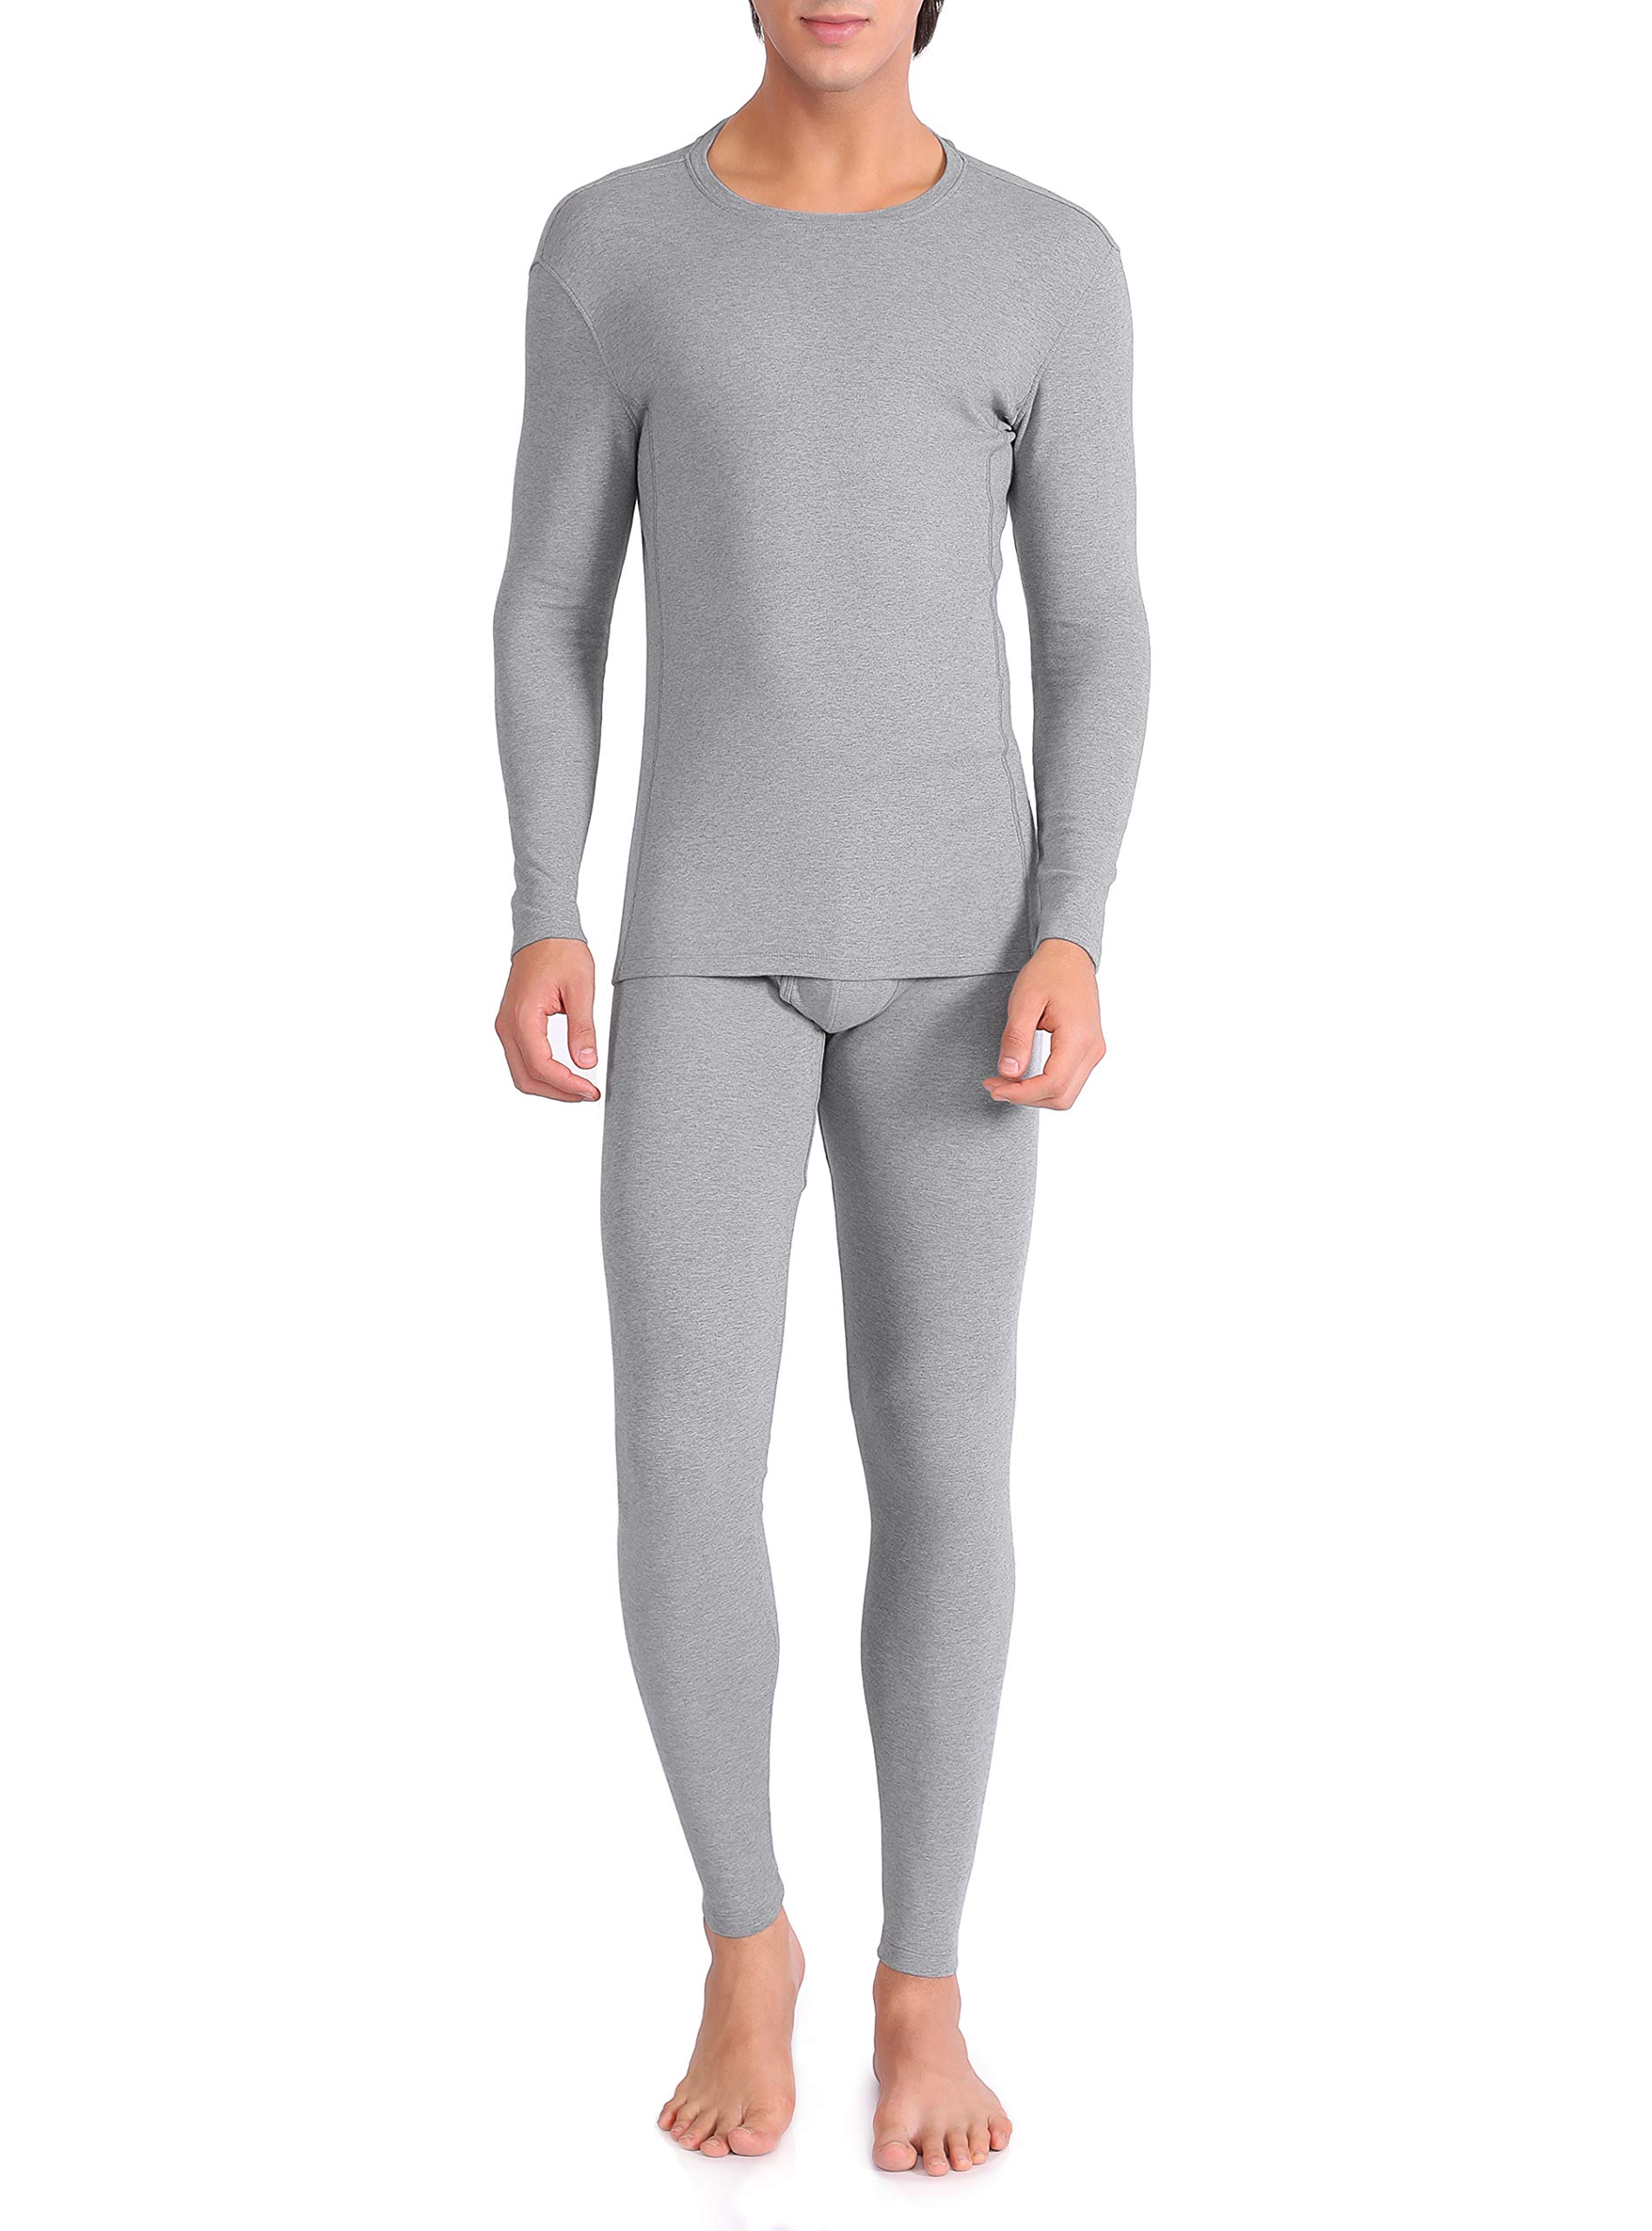 David Archy Men's Ultra Soft Warm Stretchy Cotton Fleece Lined Base Layer Top & Bottom Thermal Set Long John with Fly